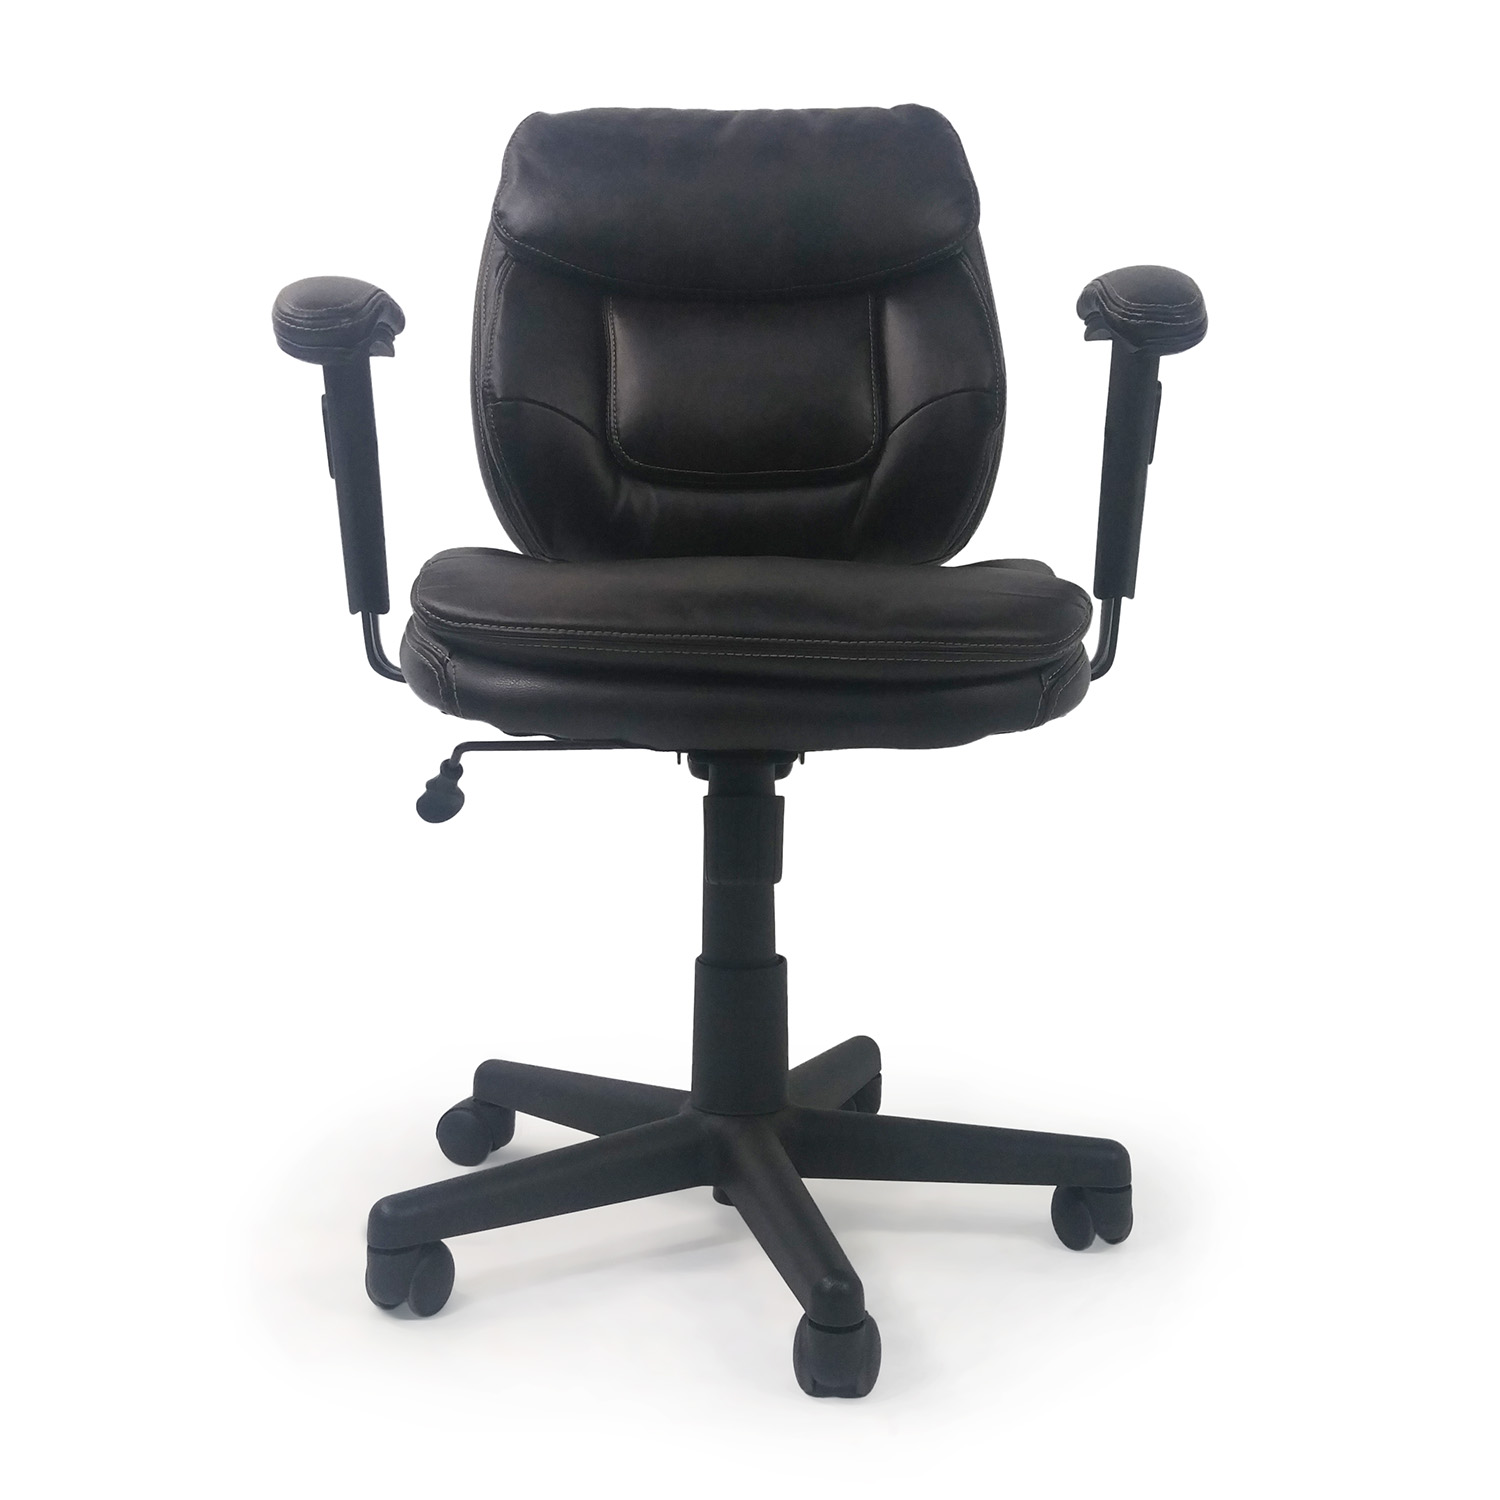 86 off plush faux leather office chair chairs for Home office chairs leather